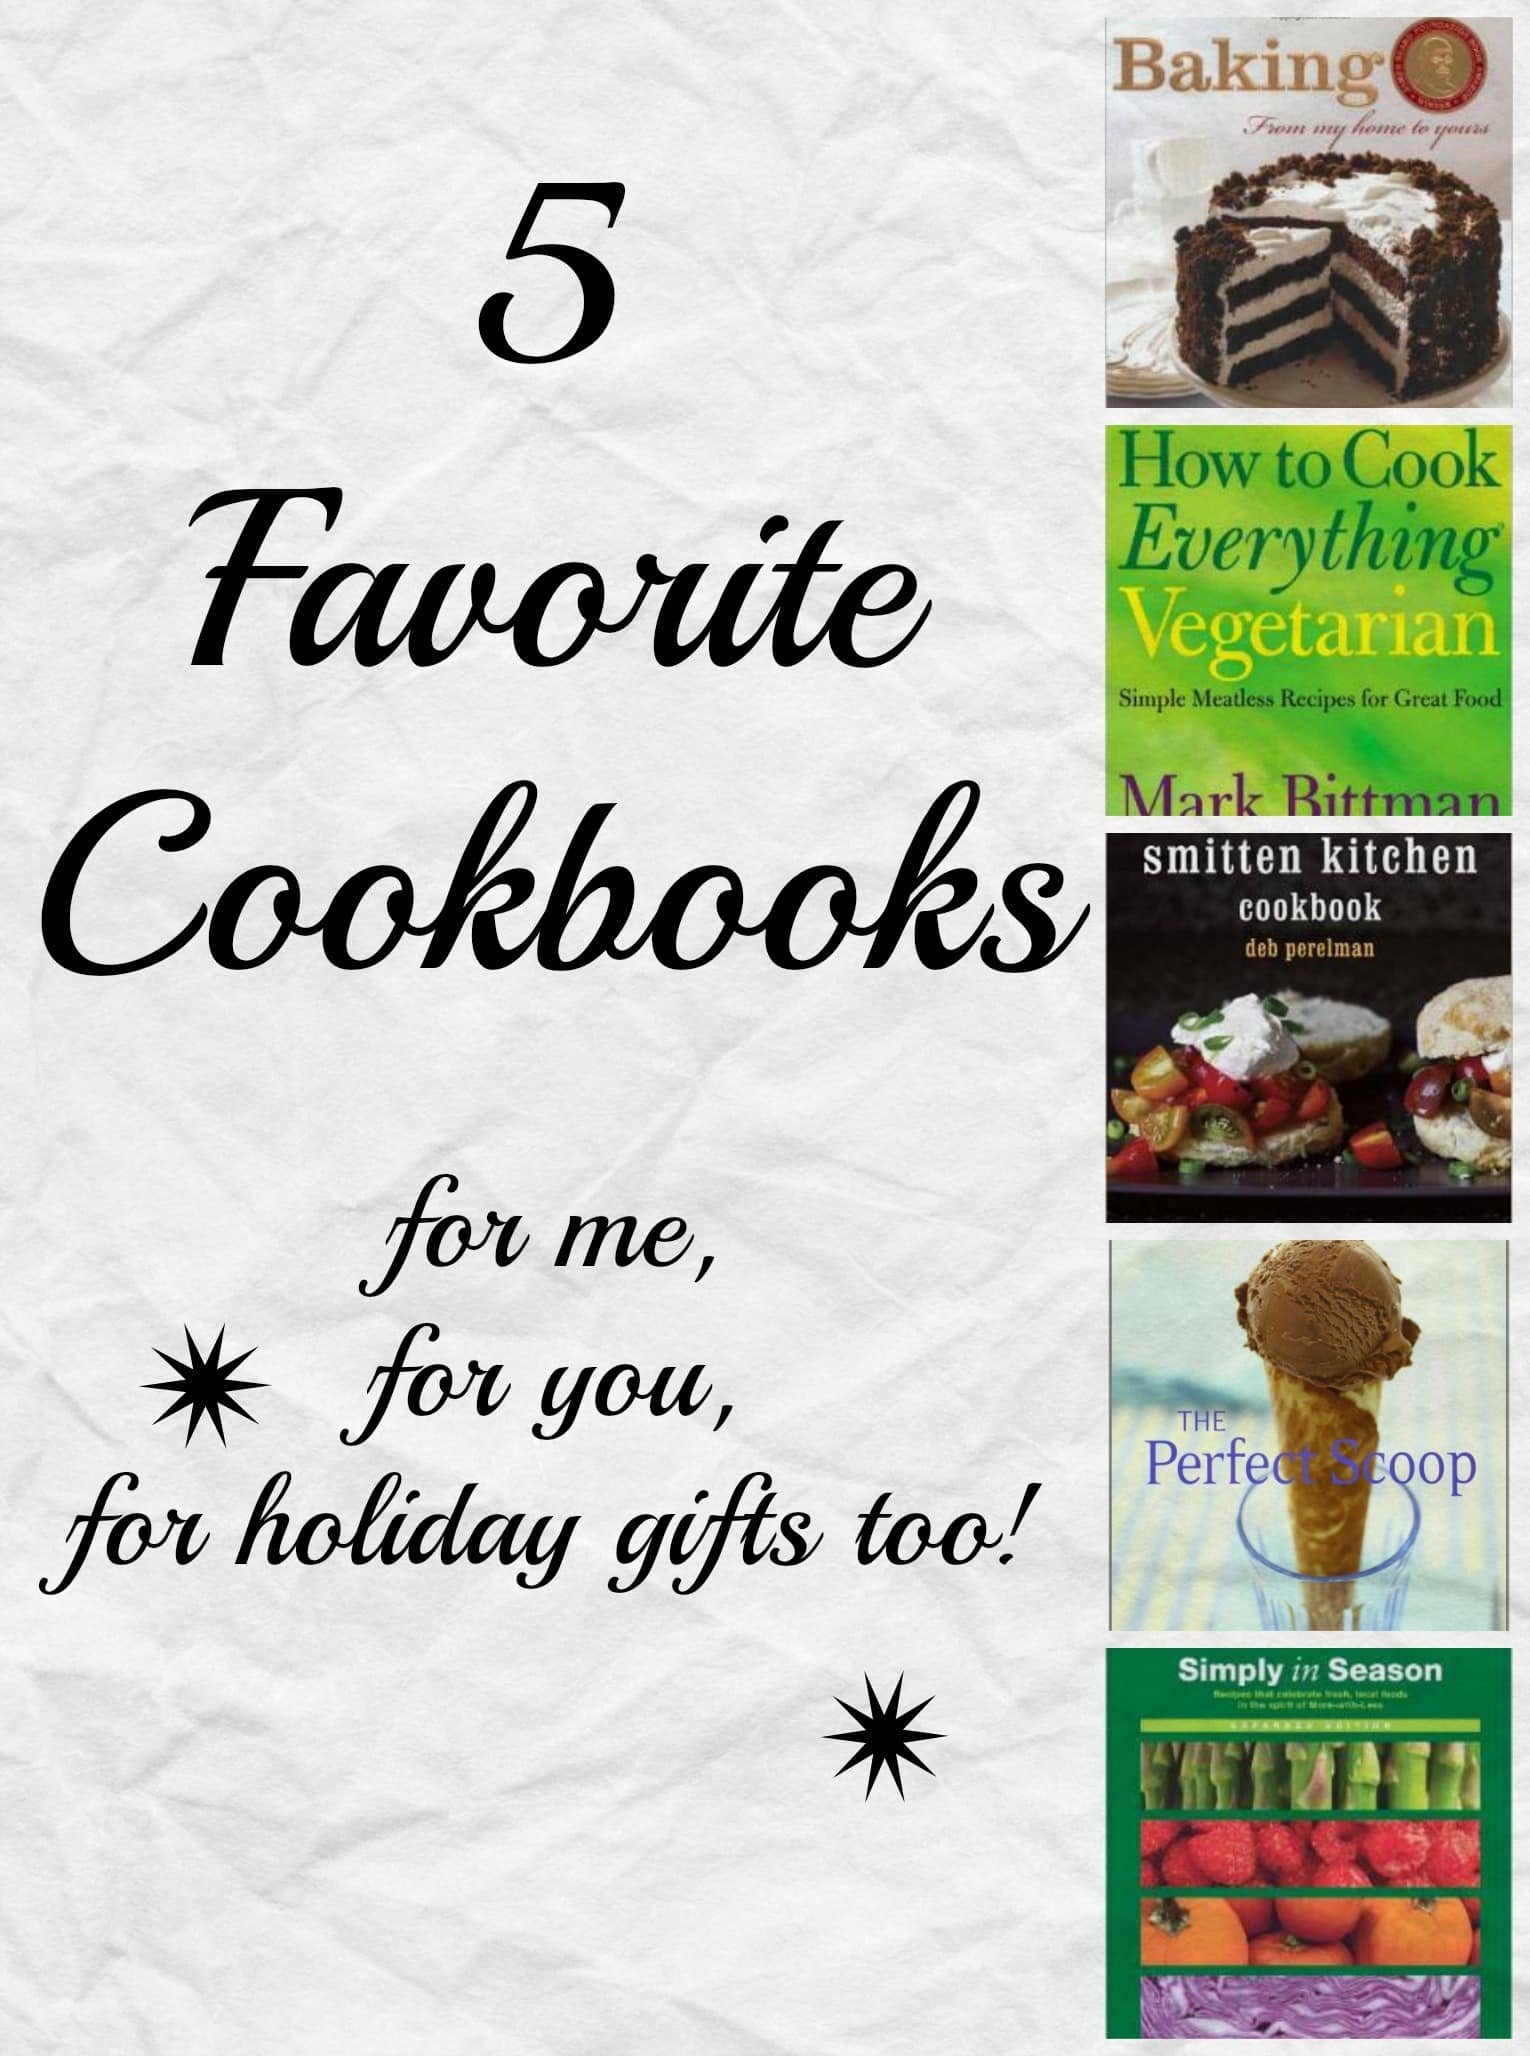 5 Favorite Cookbooks to own and for holiday gifts